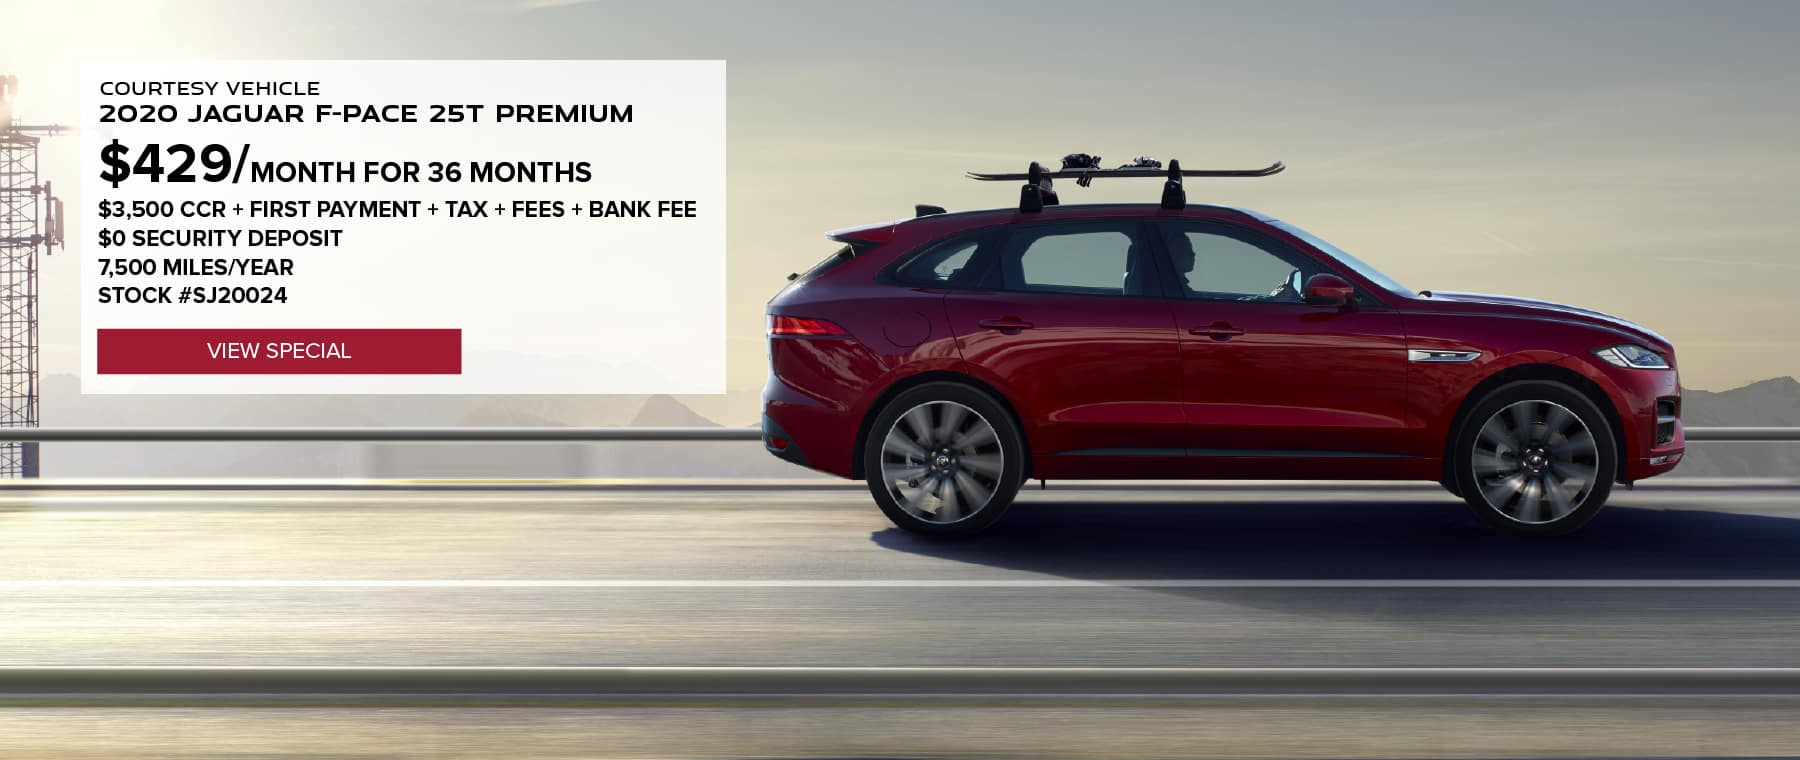 COURTESY VEHICLE. 2020 JAGUAR F-PACE 25T PREMIUM. $429 PER MONTH FOR 36 MONTHS. $3,500 CCR + FIRST PAYMENT + TAX + FEES + BANK FEE. $0 SECURITY DEPOSIT. 7,500 MILES PER YEAR. STOCK #SJ20024 VIEW SPECIAL. RED JAGUAR F-PACE DRIVING DOWN ROAD IN DESERT.